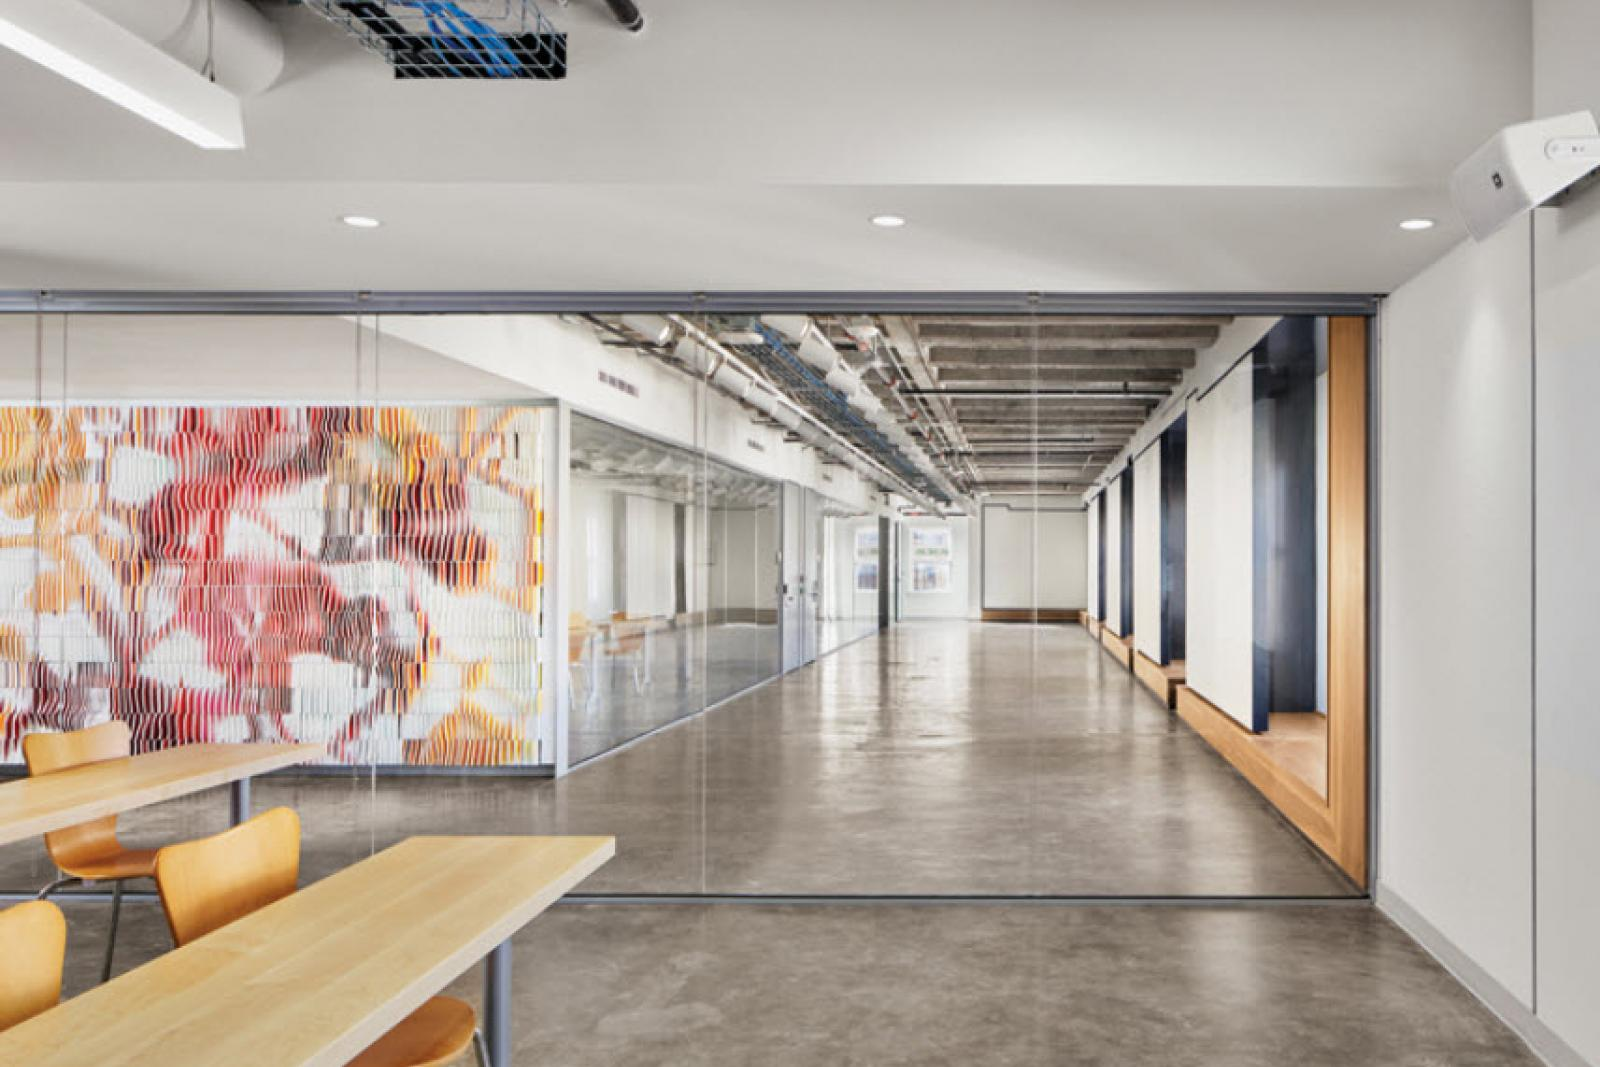 School of Architecture renovation project